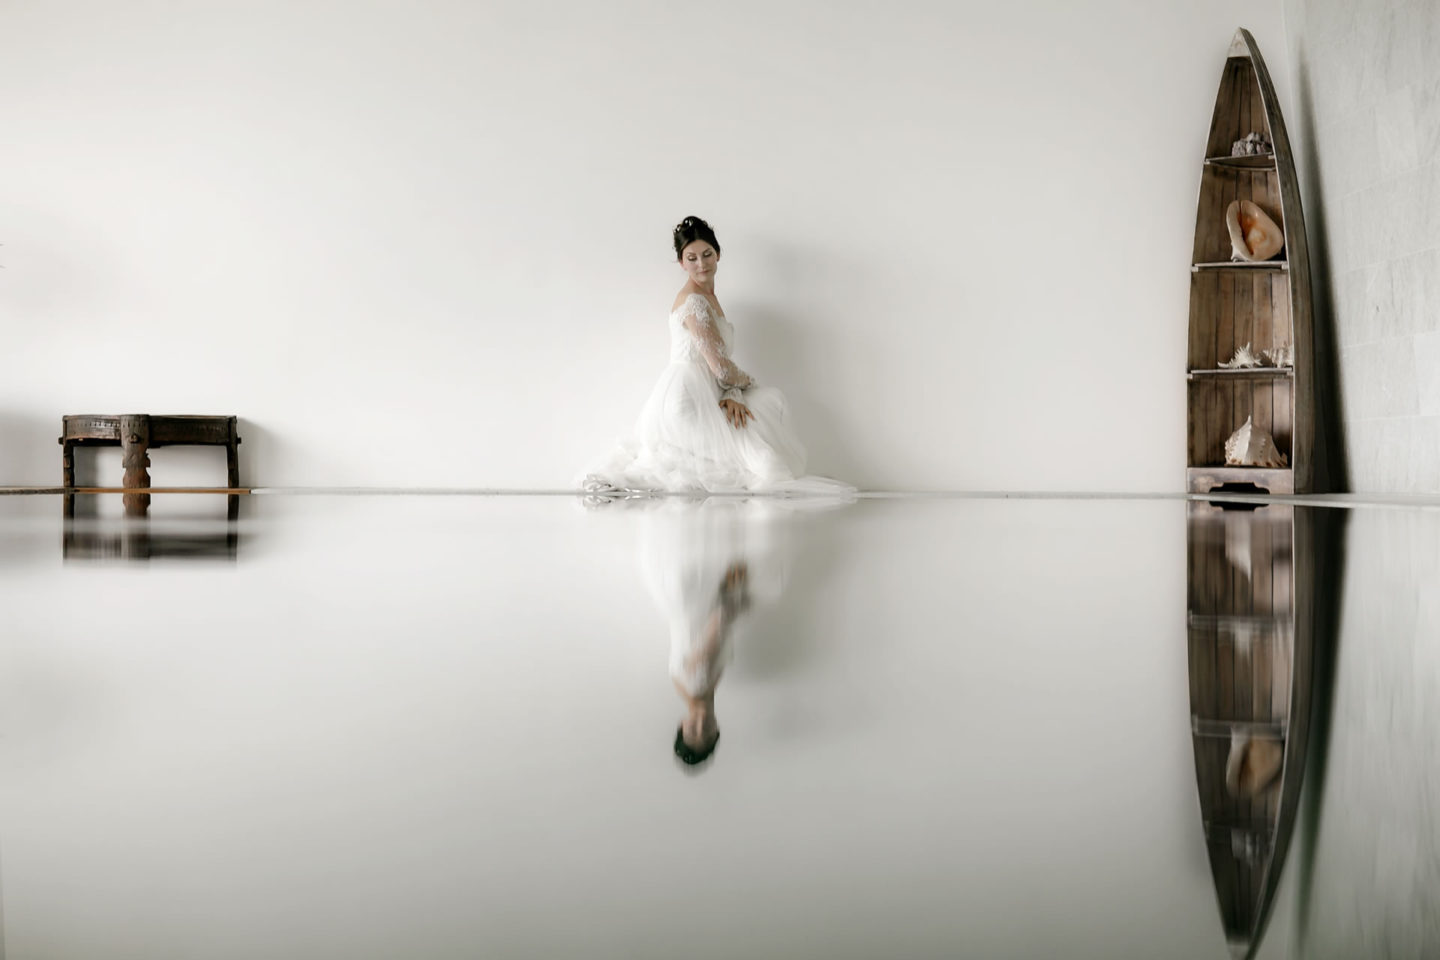 Reflex :: Bride alone :: David Bastianoni wedding photographer